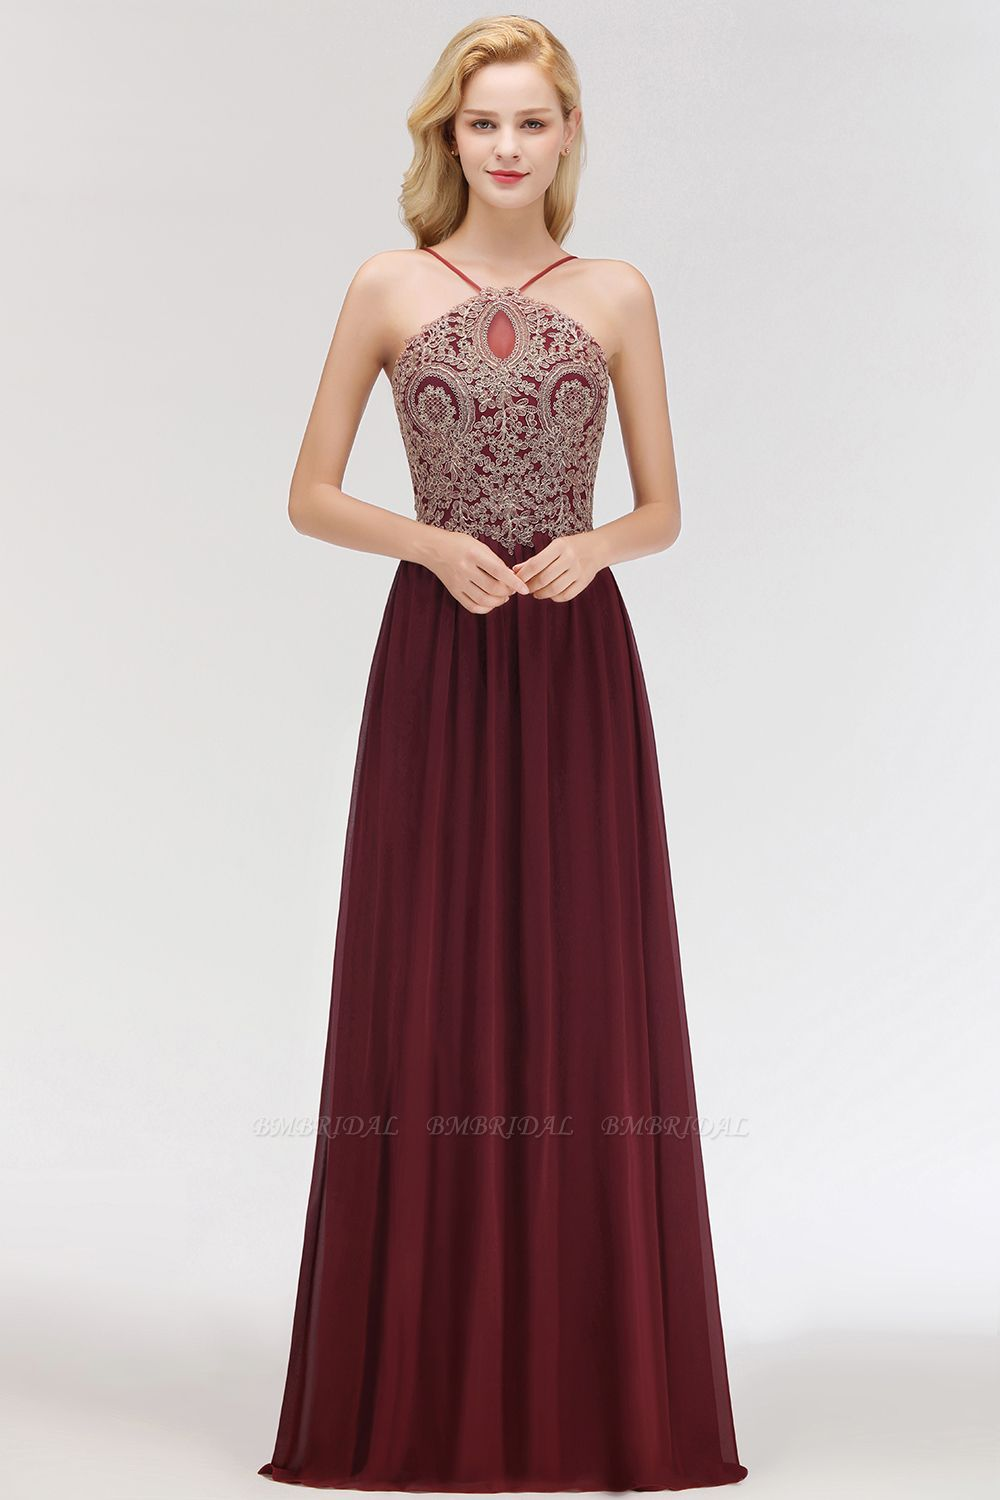 BMbridal Chic Spaghetti Straps Long Burgundy Backless Bridesmaid Dress with Appliques